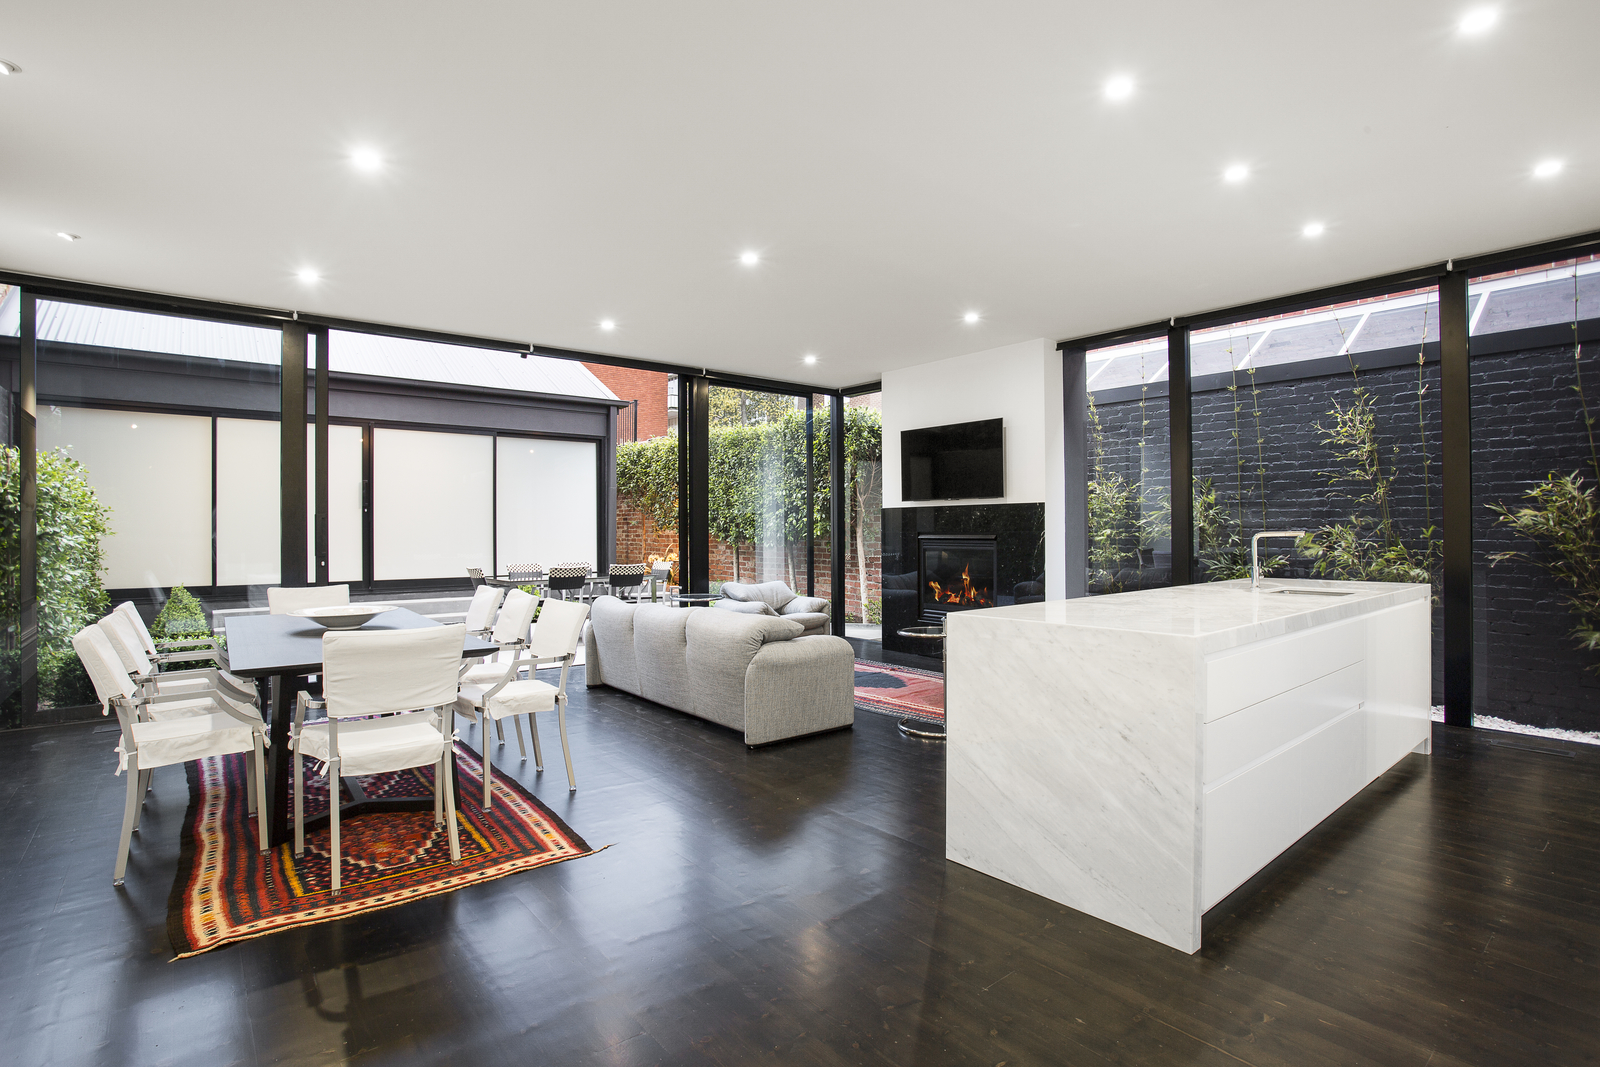 62 Tivoli Road, South Yarra 3141 - Image 2